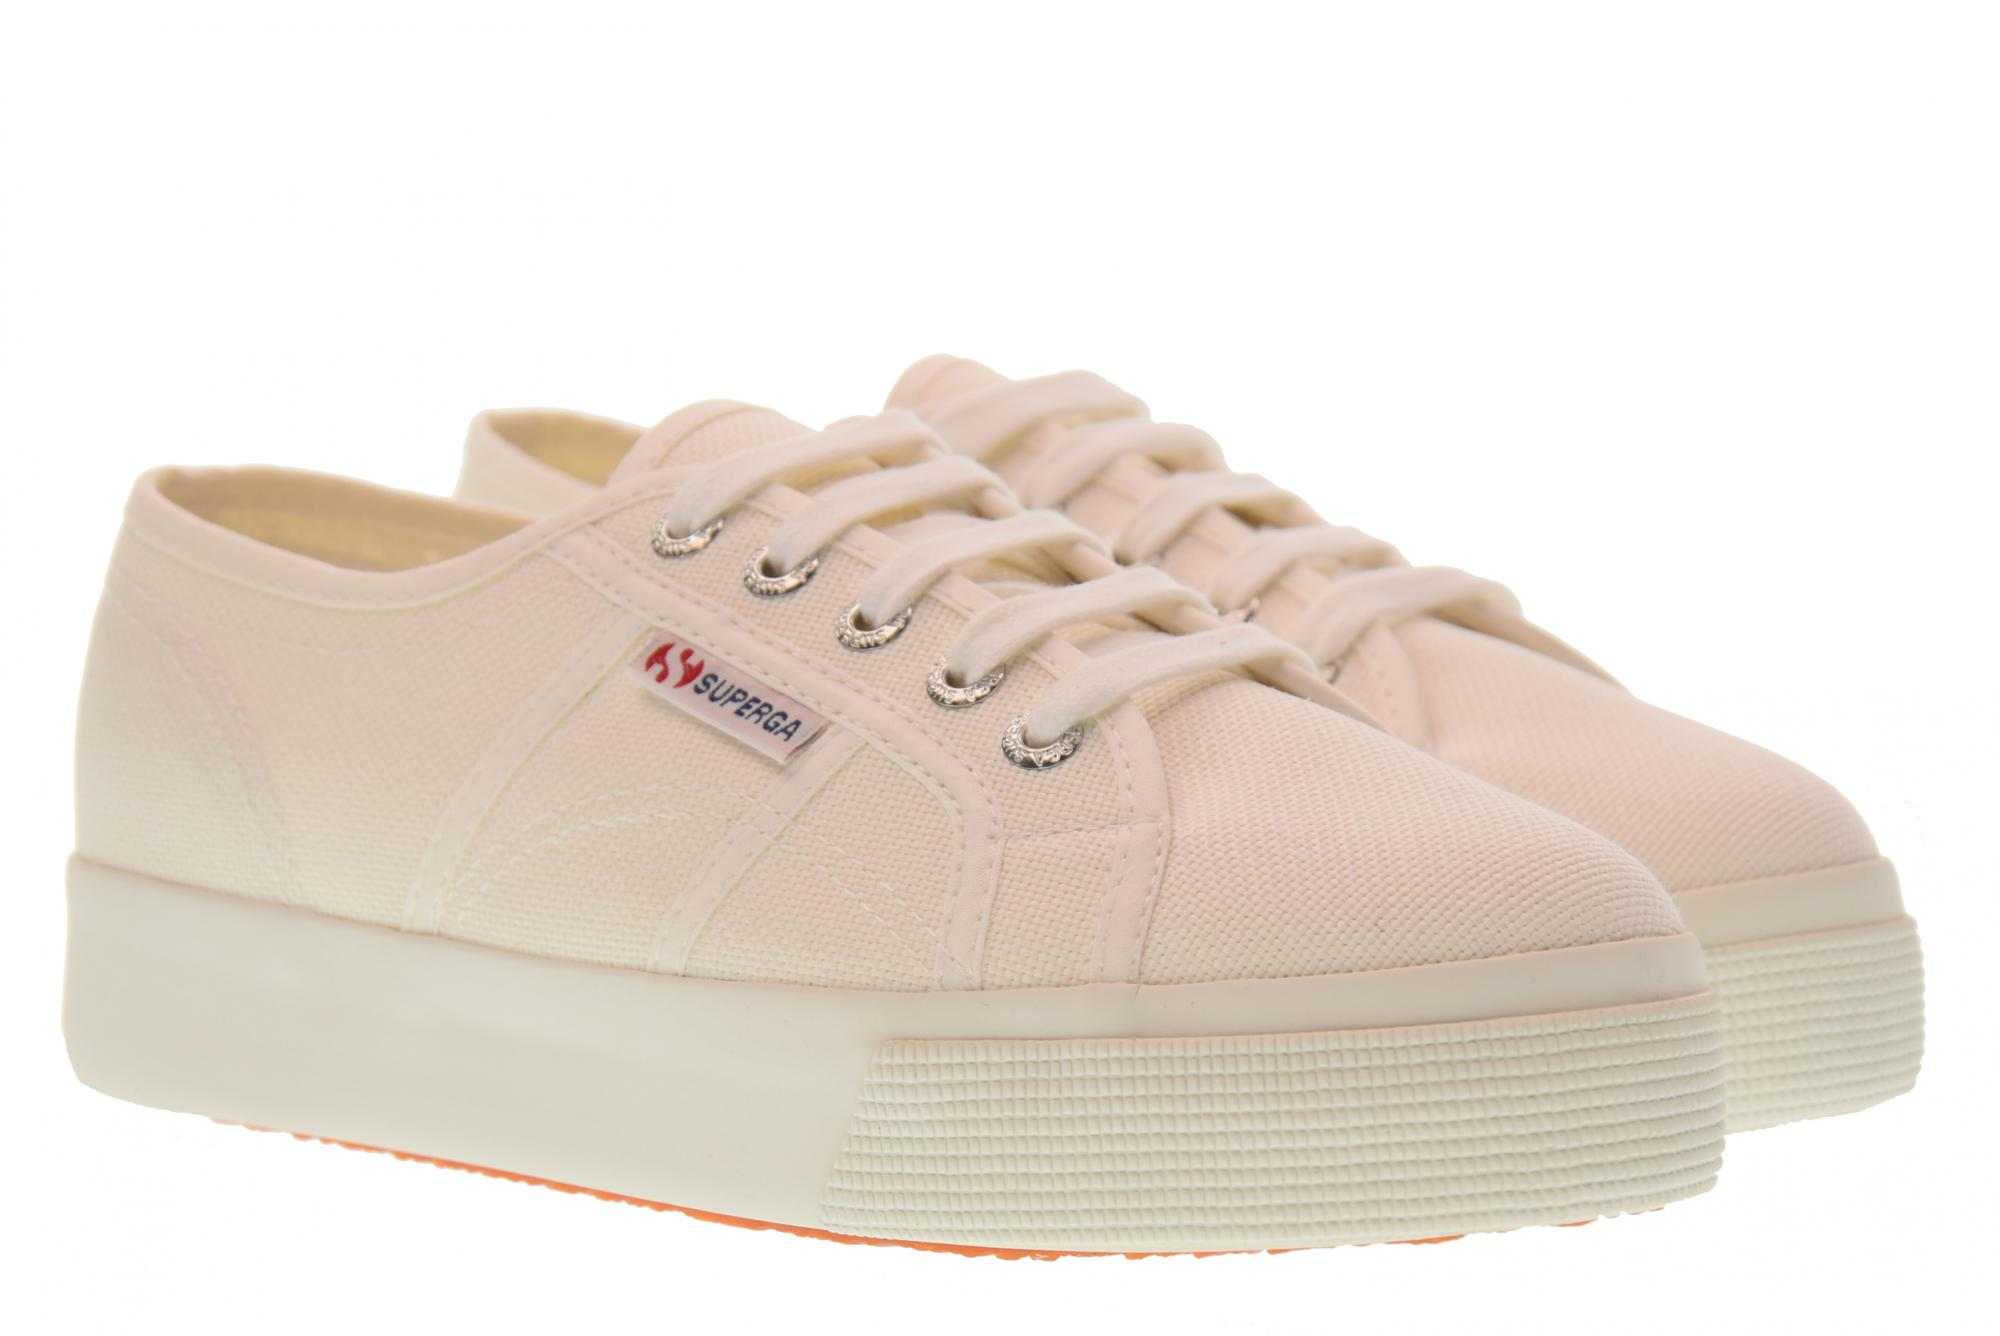 new styles 60a36 21e76 Details about Superga P19u women's low sneakers 2730 COTU S00C3N0 901